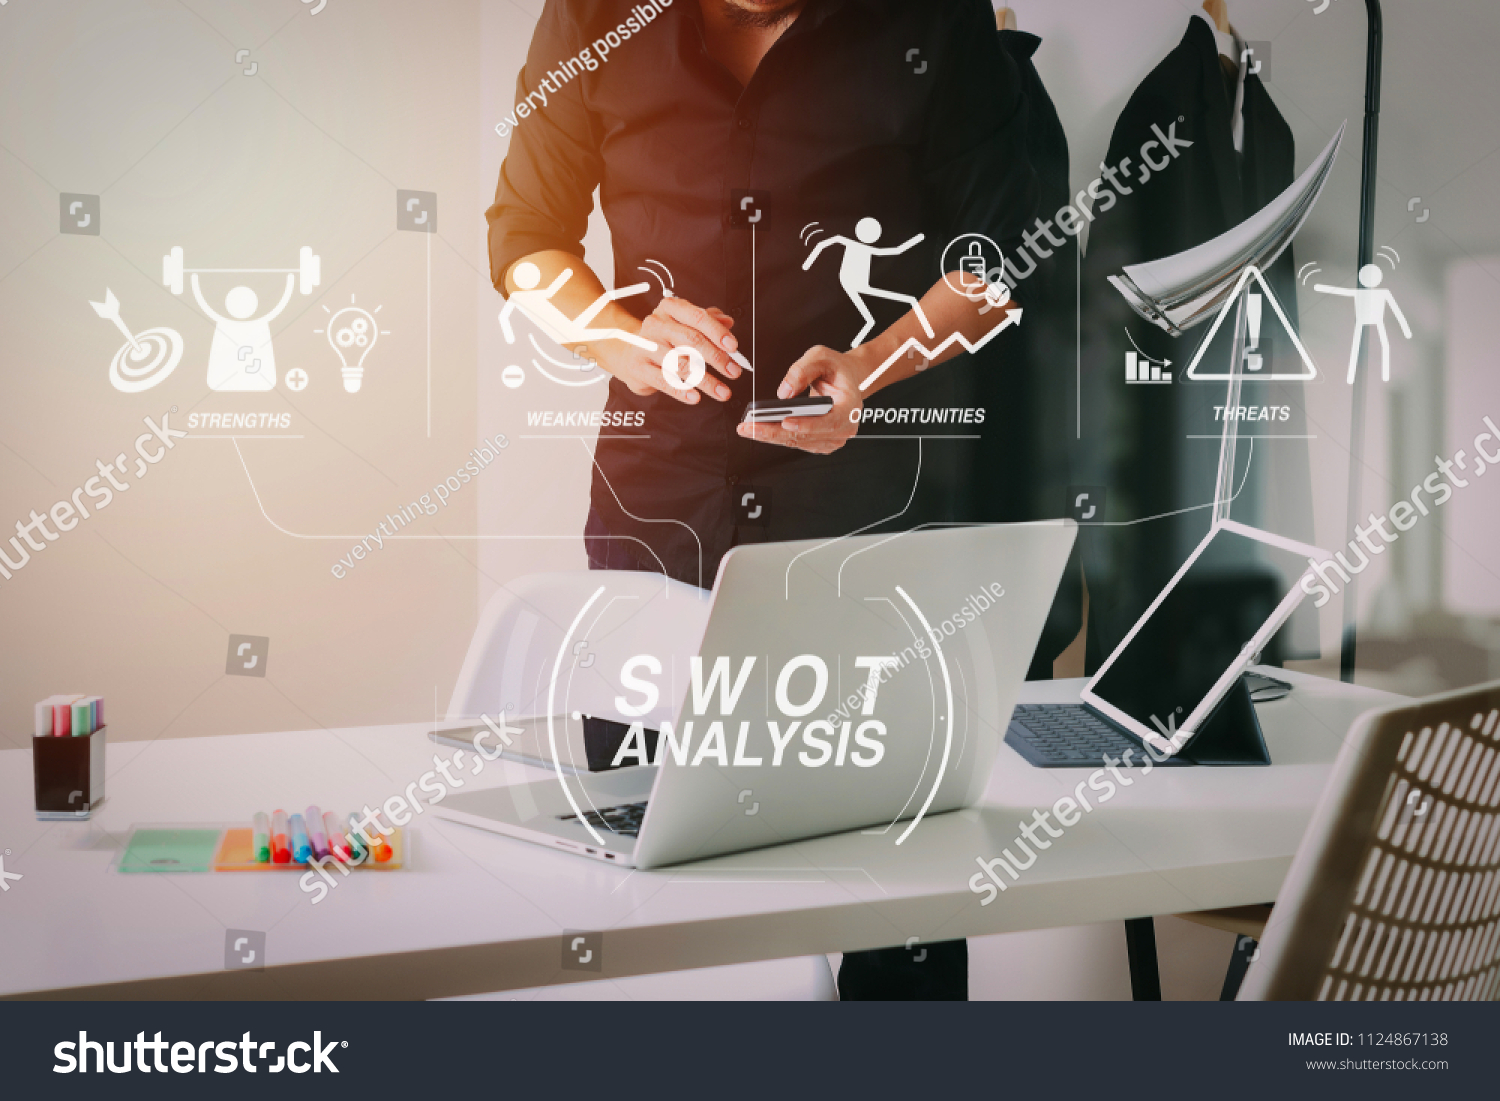 Swot Analysis Virtual Diagram Strengths Weaknesses Stock Photo Edit Now 1124867138